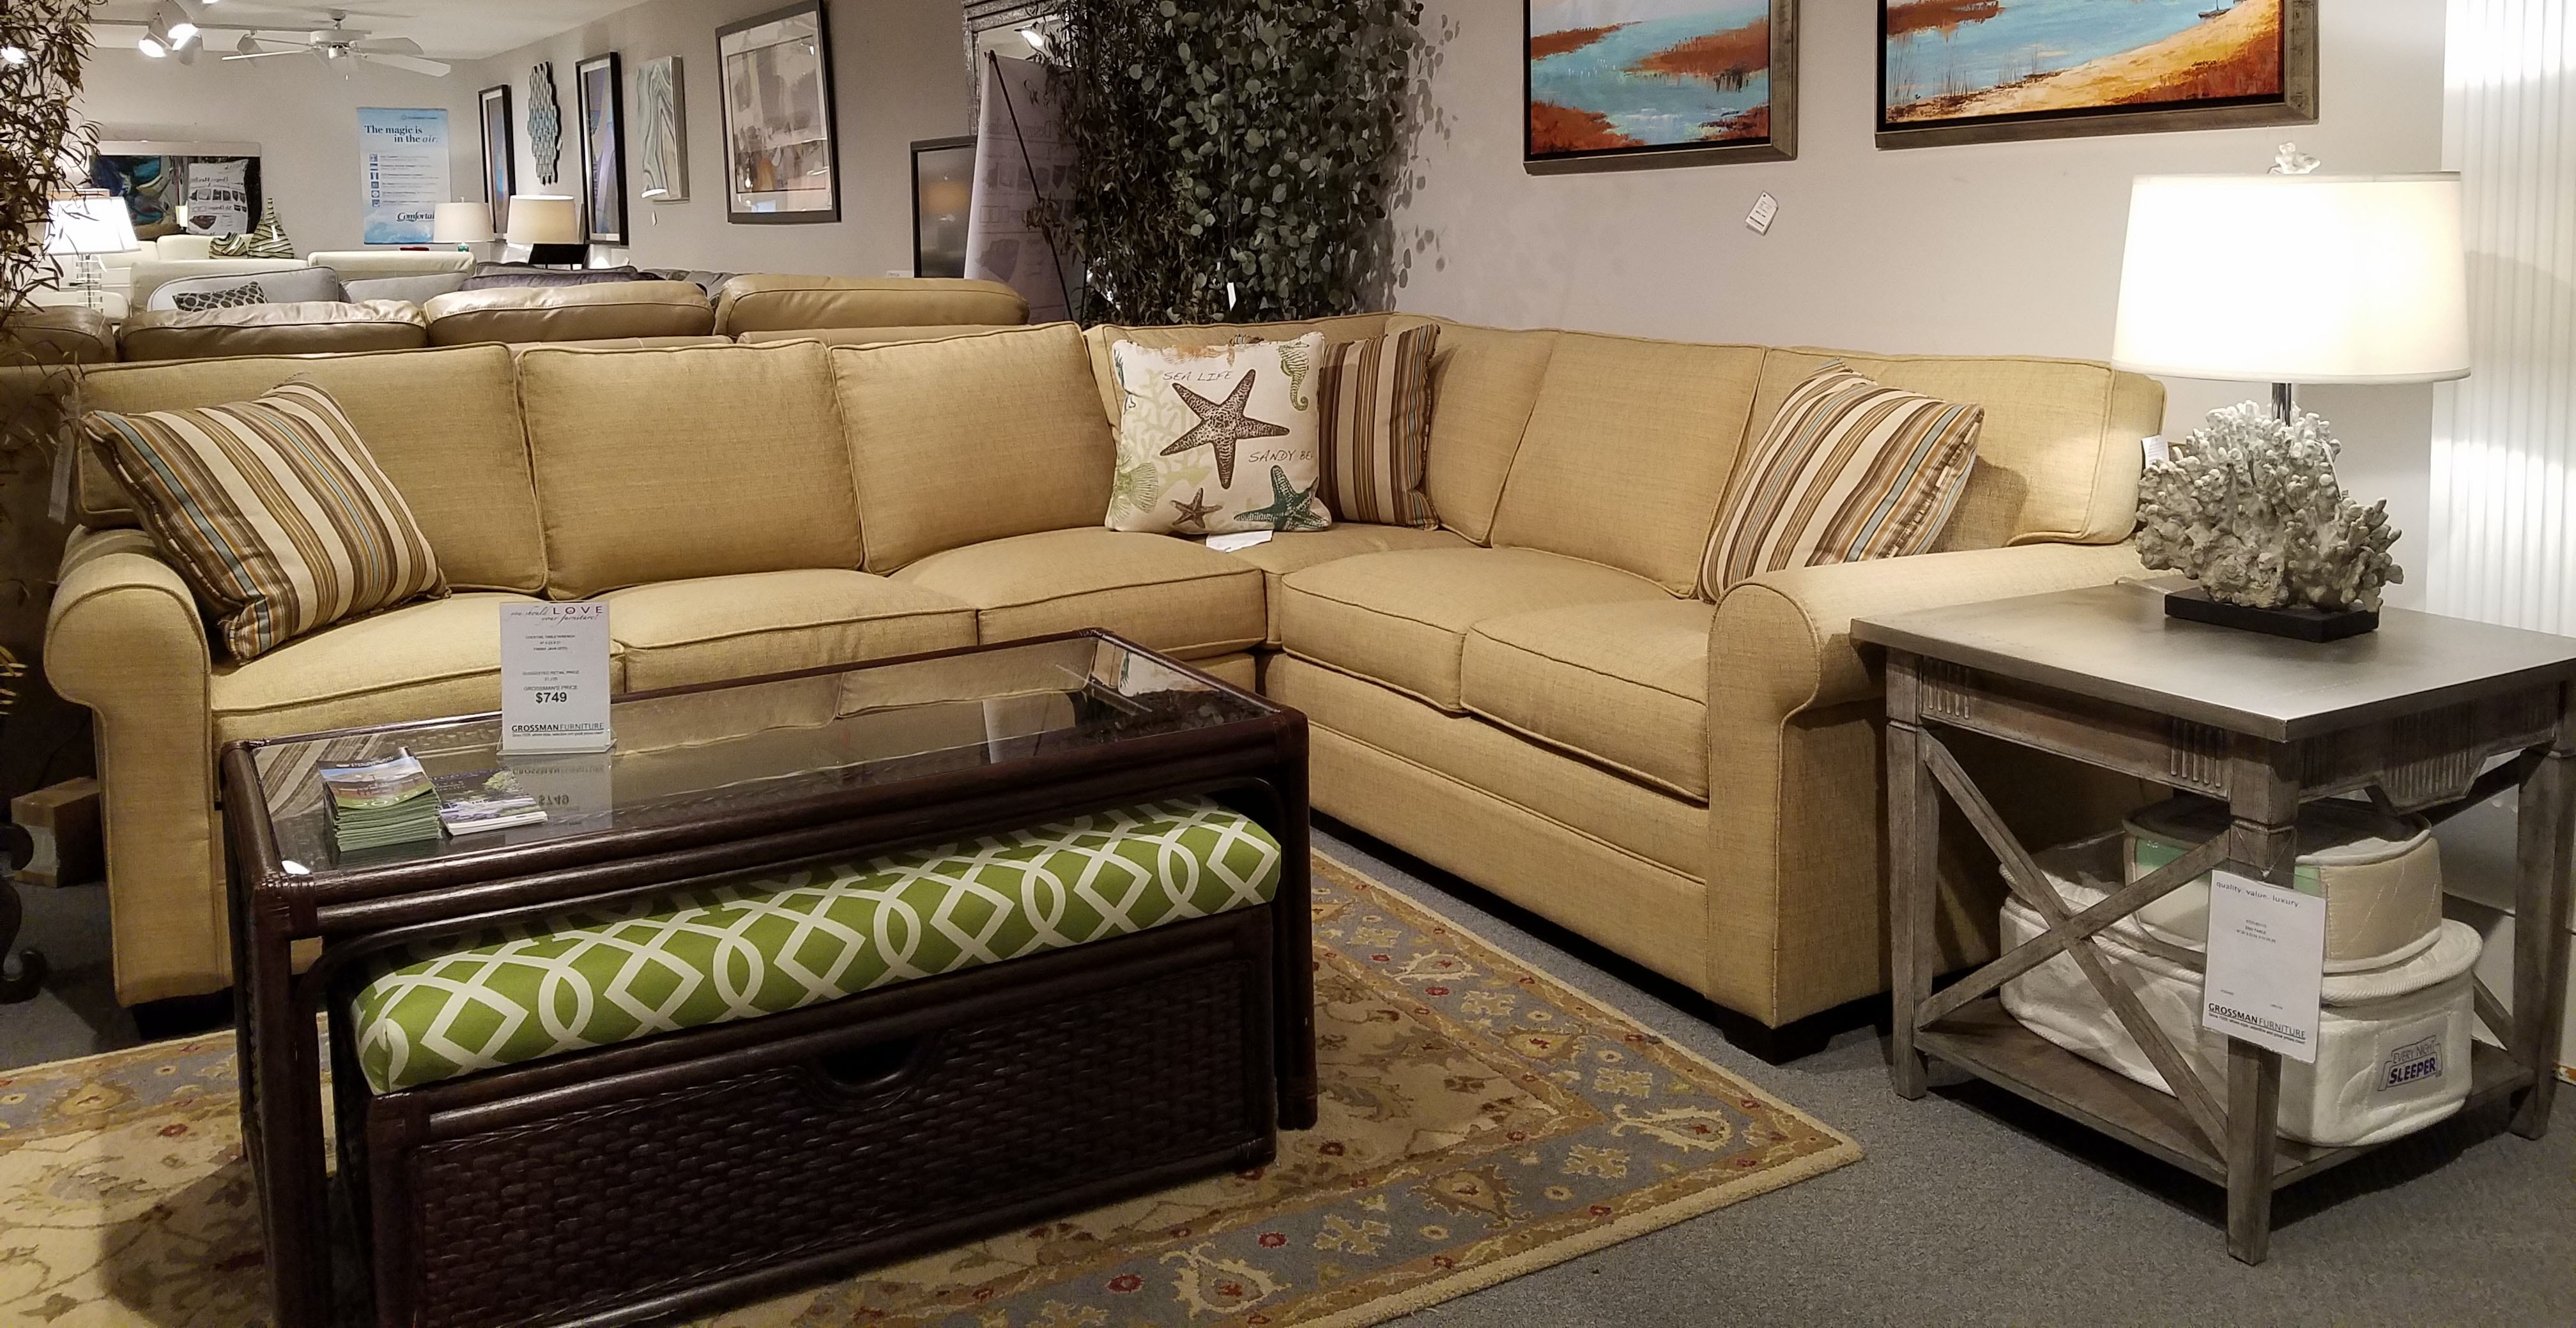 728 SECTIONAL Large